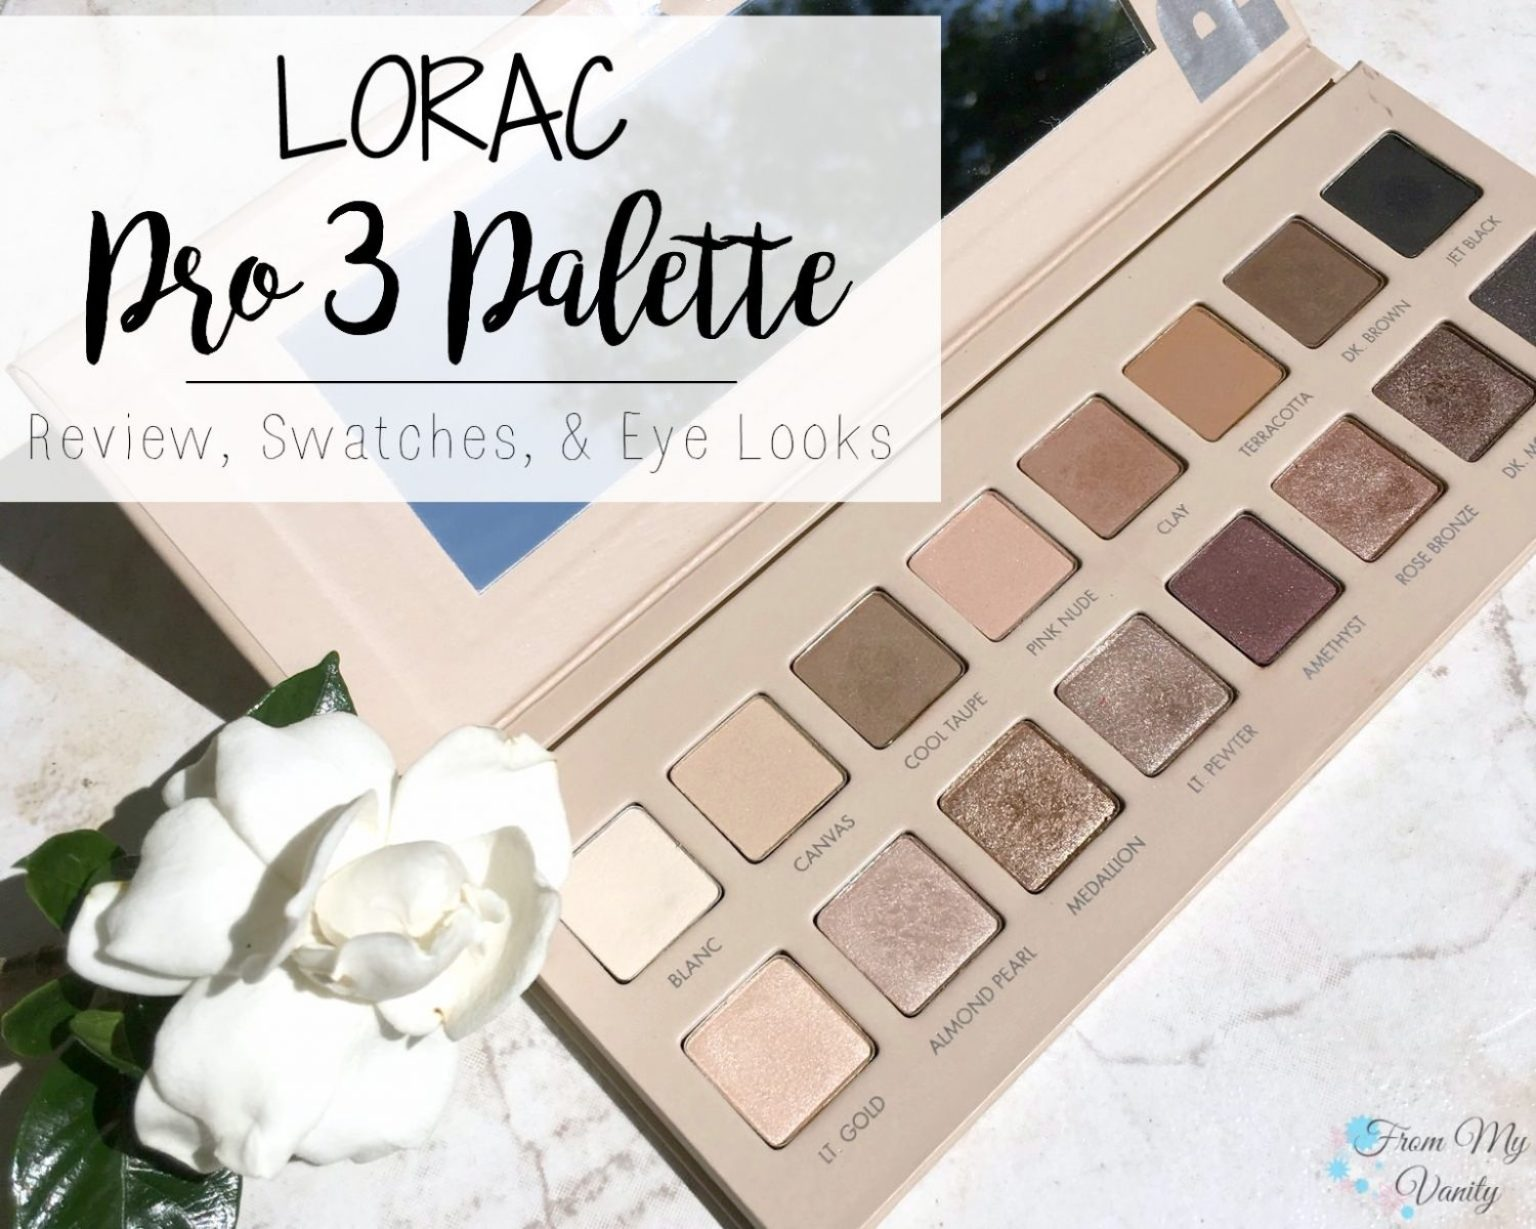 A LORAC PRO 3 Palette Review, so detailed!